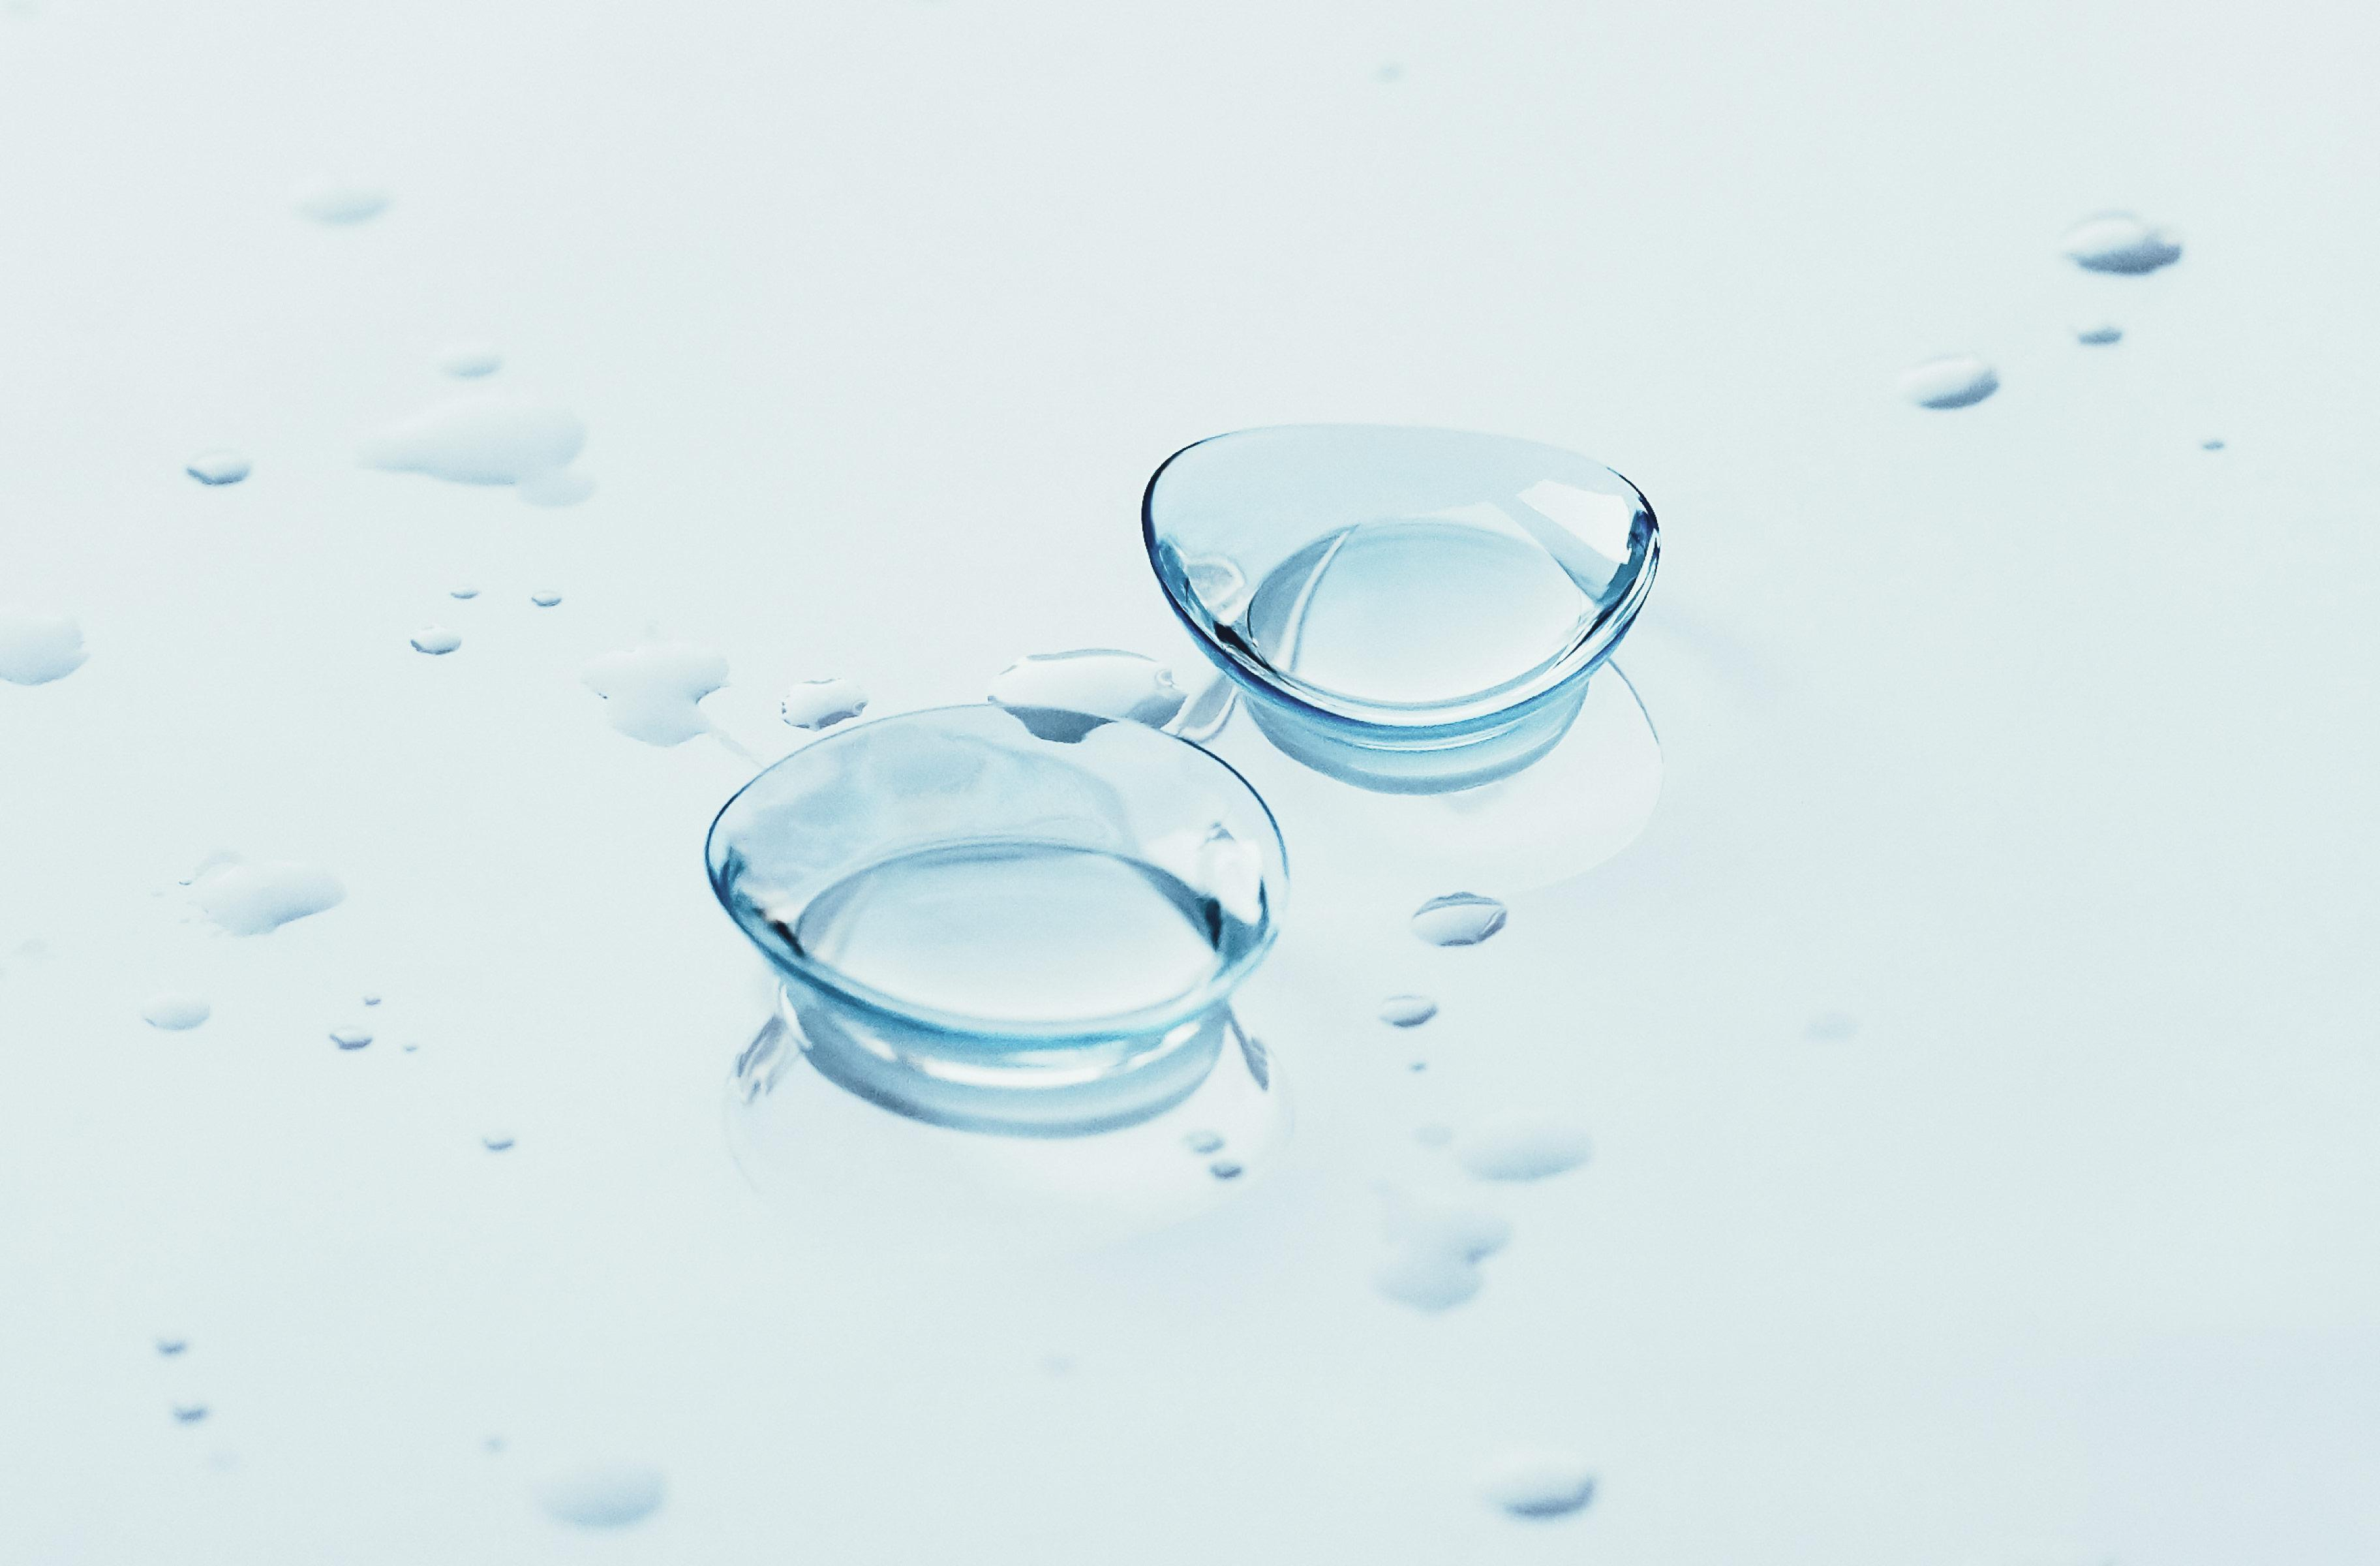 Contact lenses gorged with water